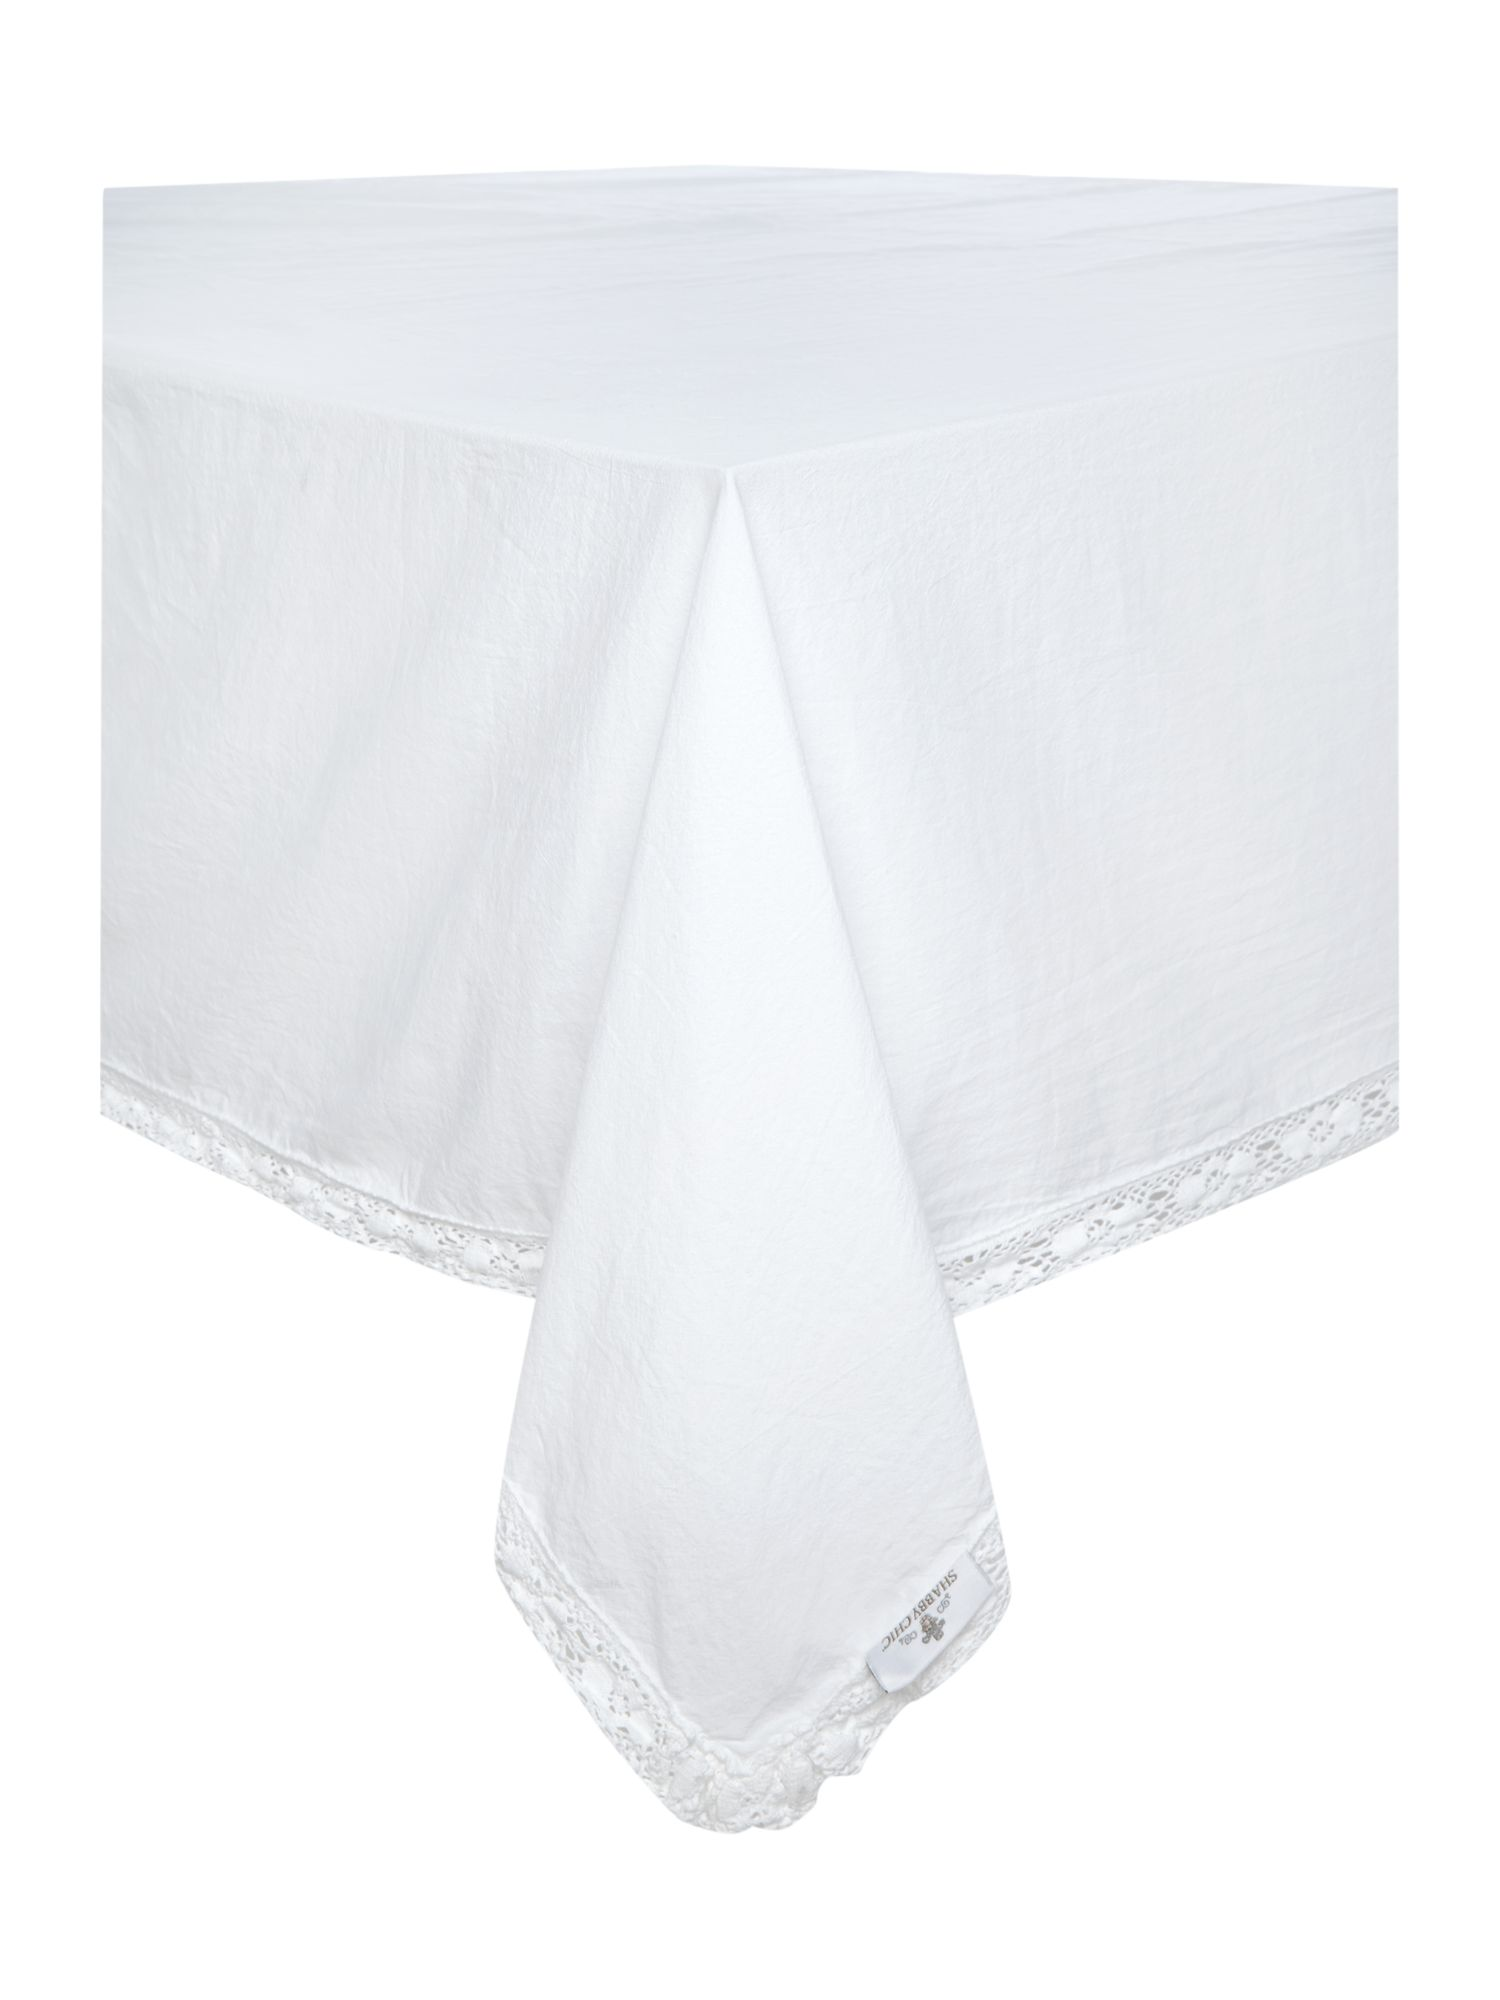 Image of Shabby Chic Lace Trim Tablecloth 140 x 180cm